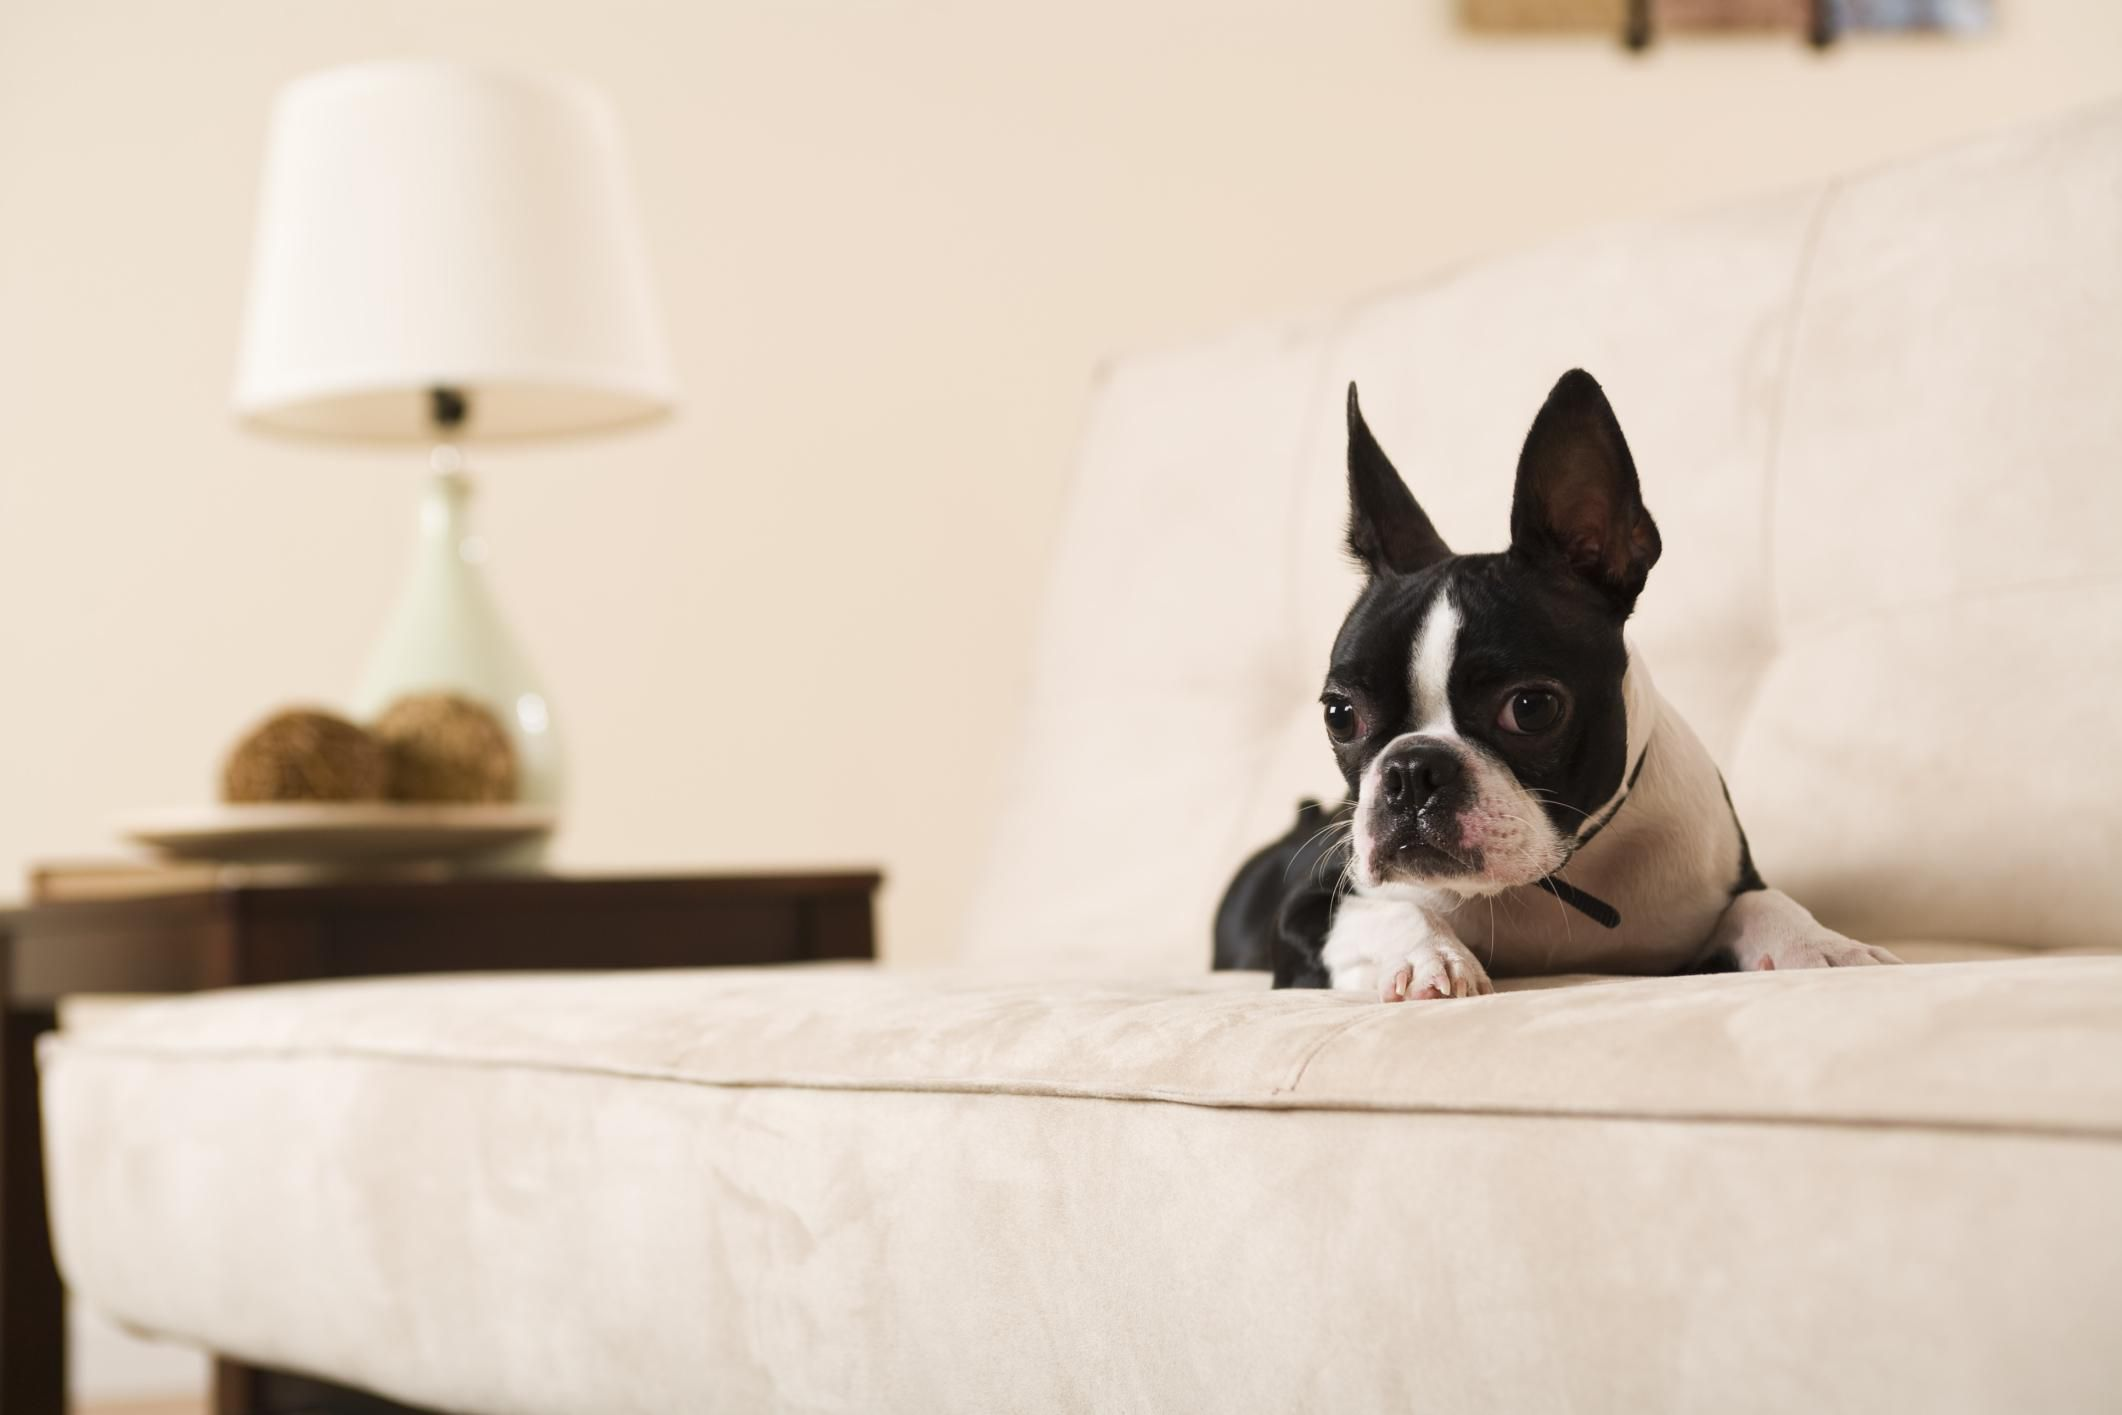 Top 2 Couch Upholstery Choices for Cat and Dog Owners